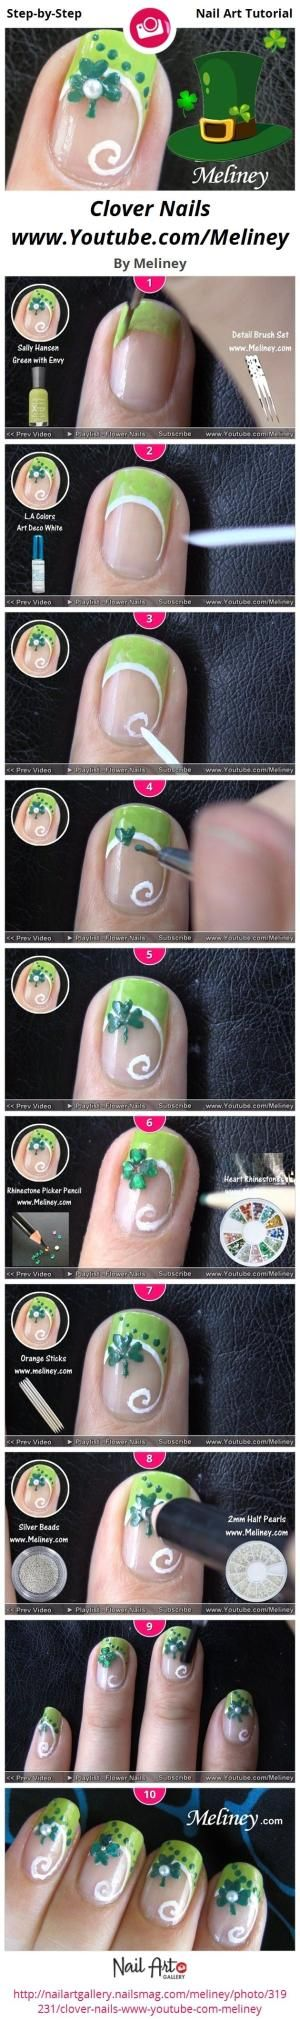 St. Patrick's Day nails by jacquelyn